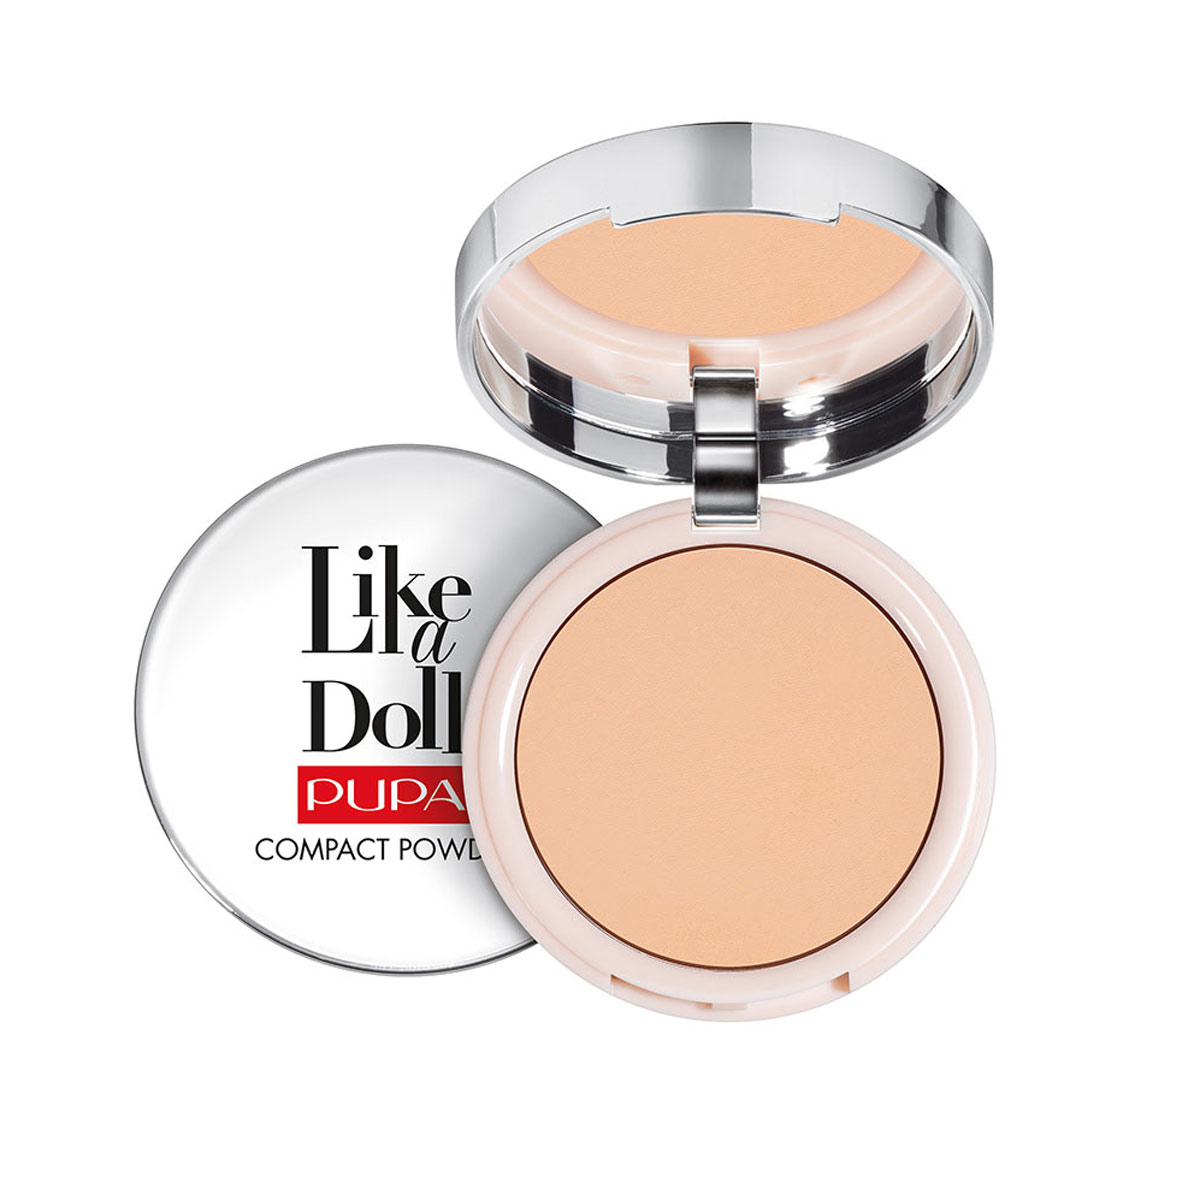 Puder Pupa Like A Doll Nude Skin Compact Powder SPF15 Puder matujący  10 g - 003 Natural Beige